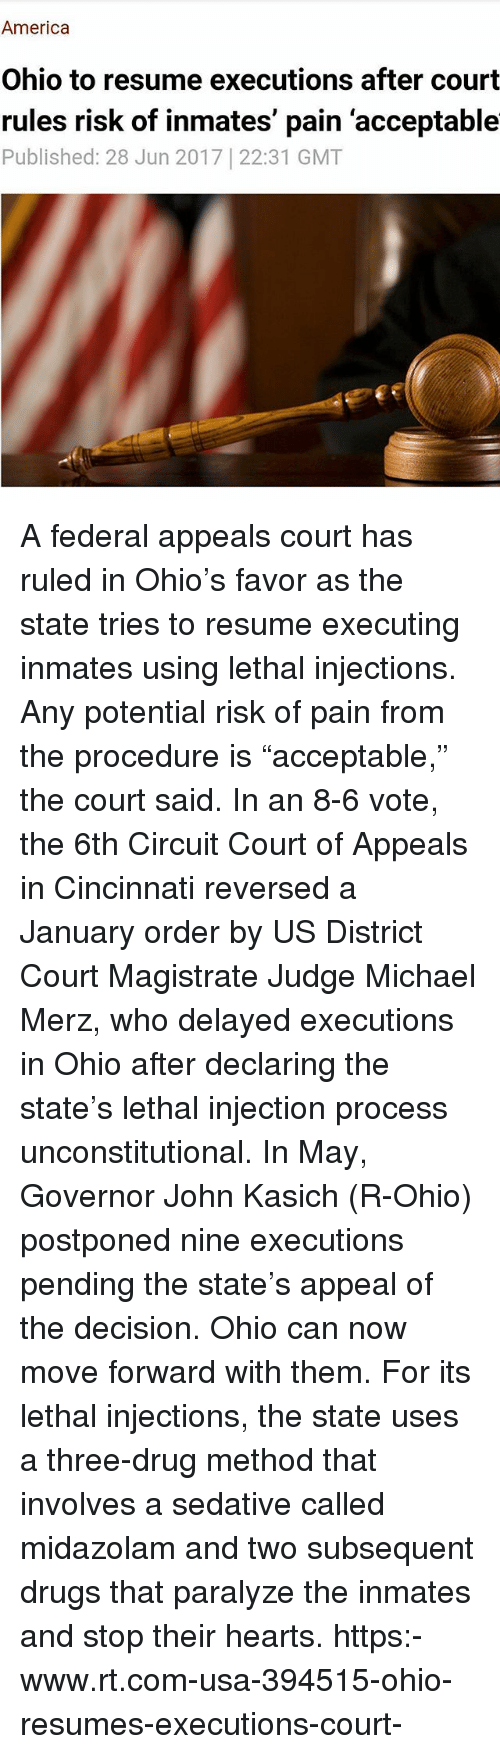 america drugs and memes america ohio to resume executions after court rules risk - Resume Rules